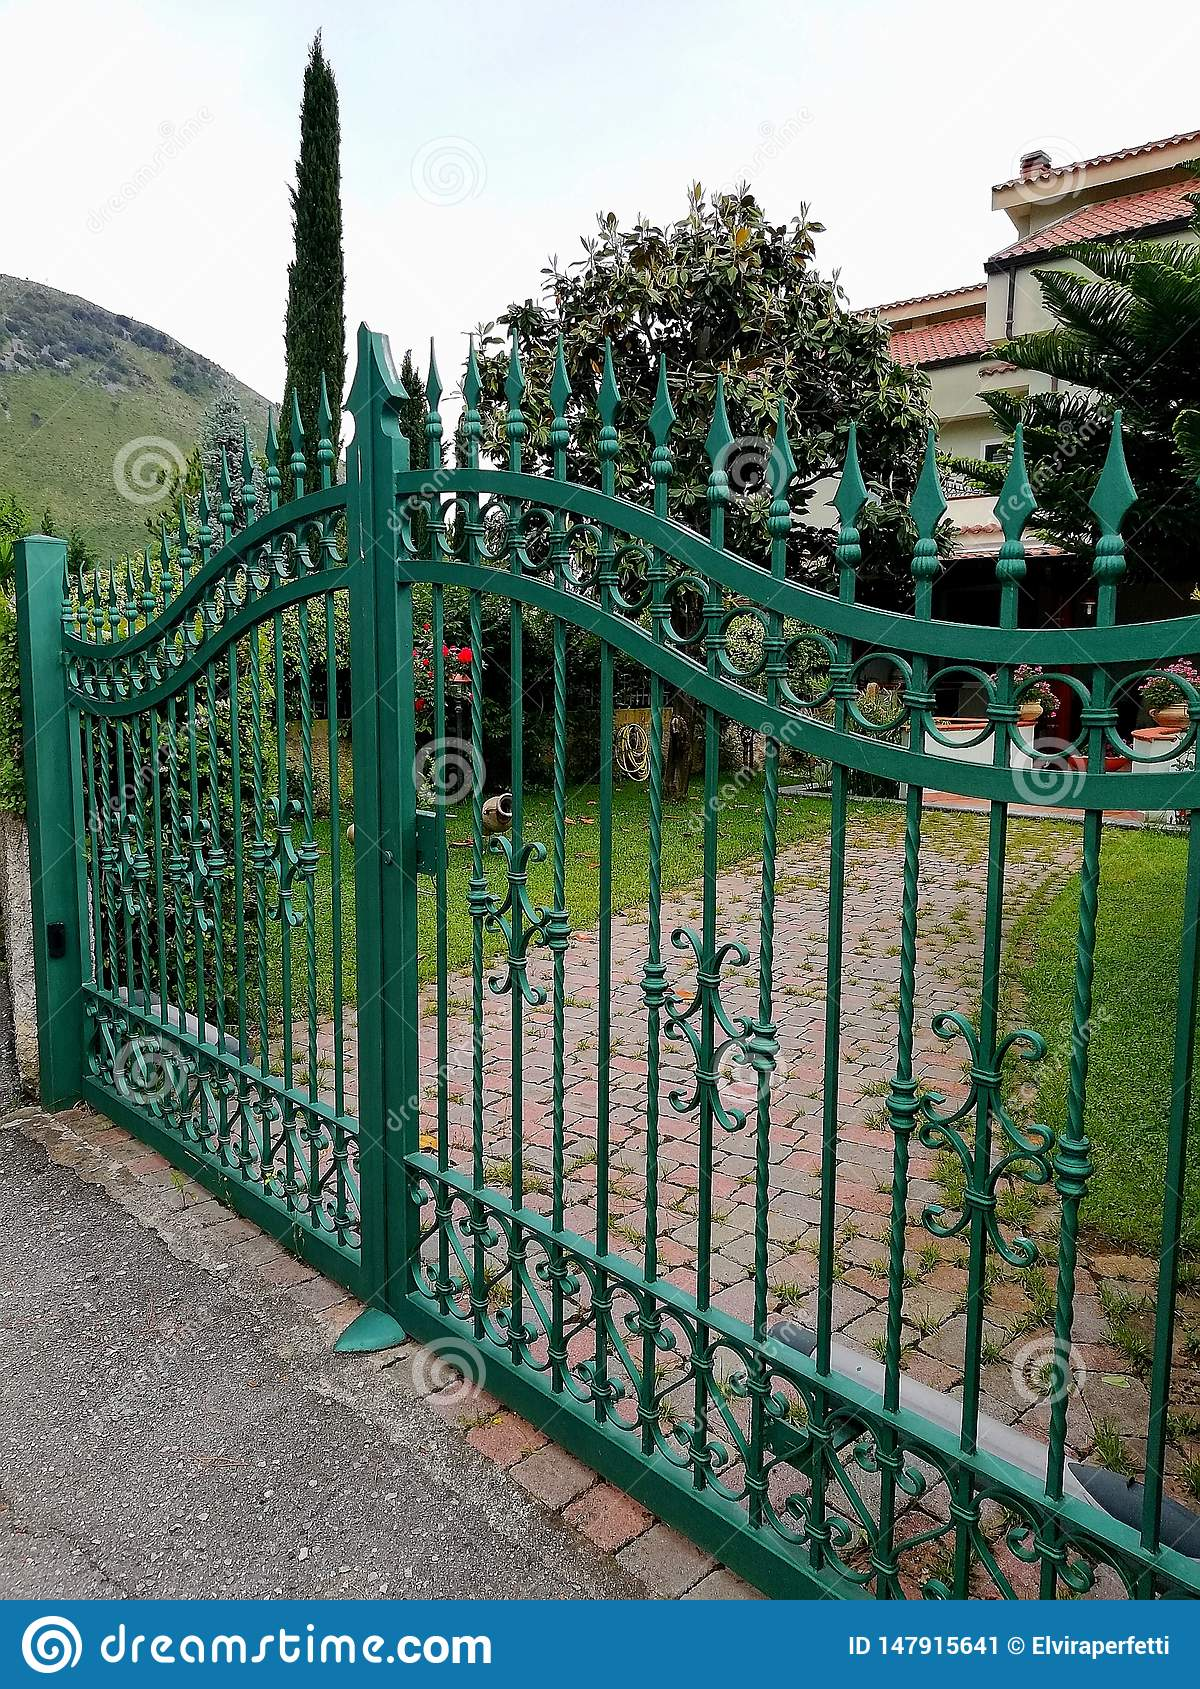 A traditional iron gate of a house entrance